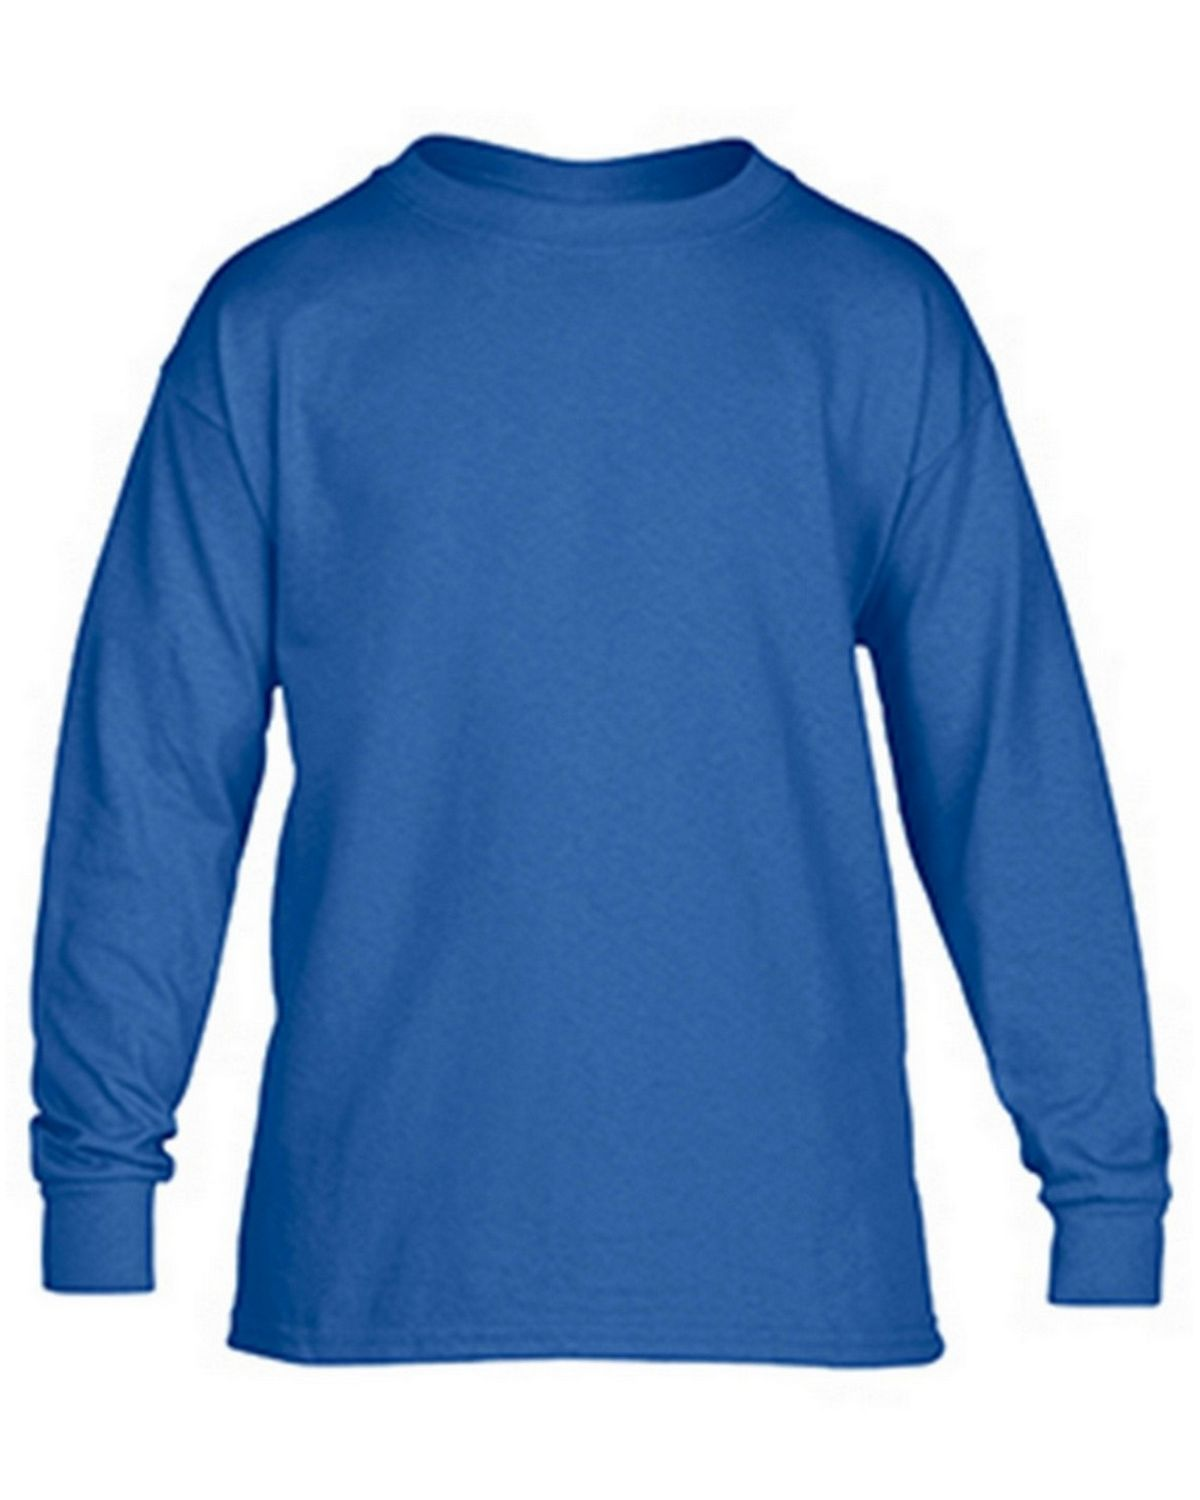 Gildan G5400B Youth Long Sleeve Tee - Royal - XL G5400B